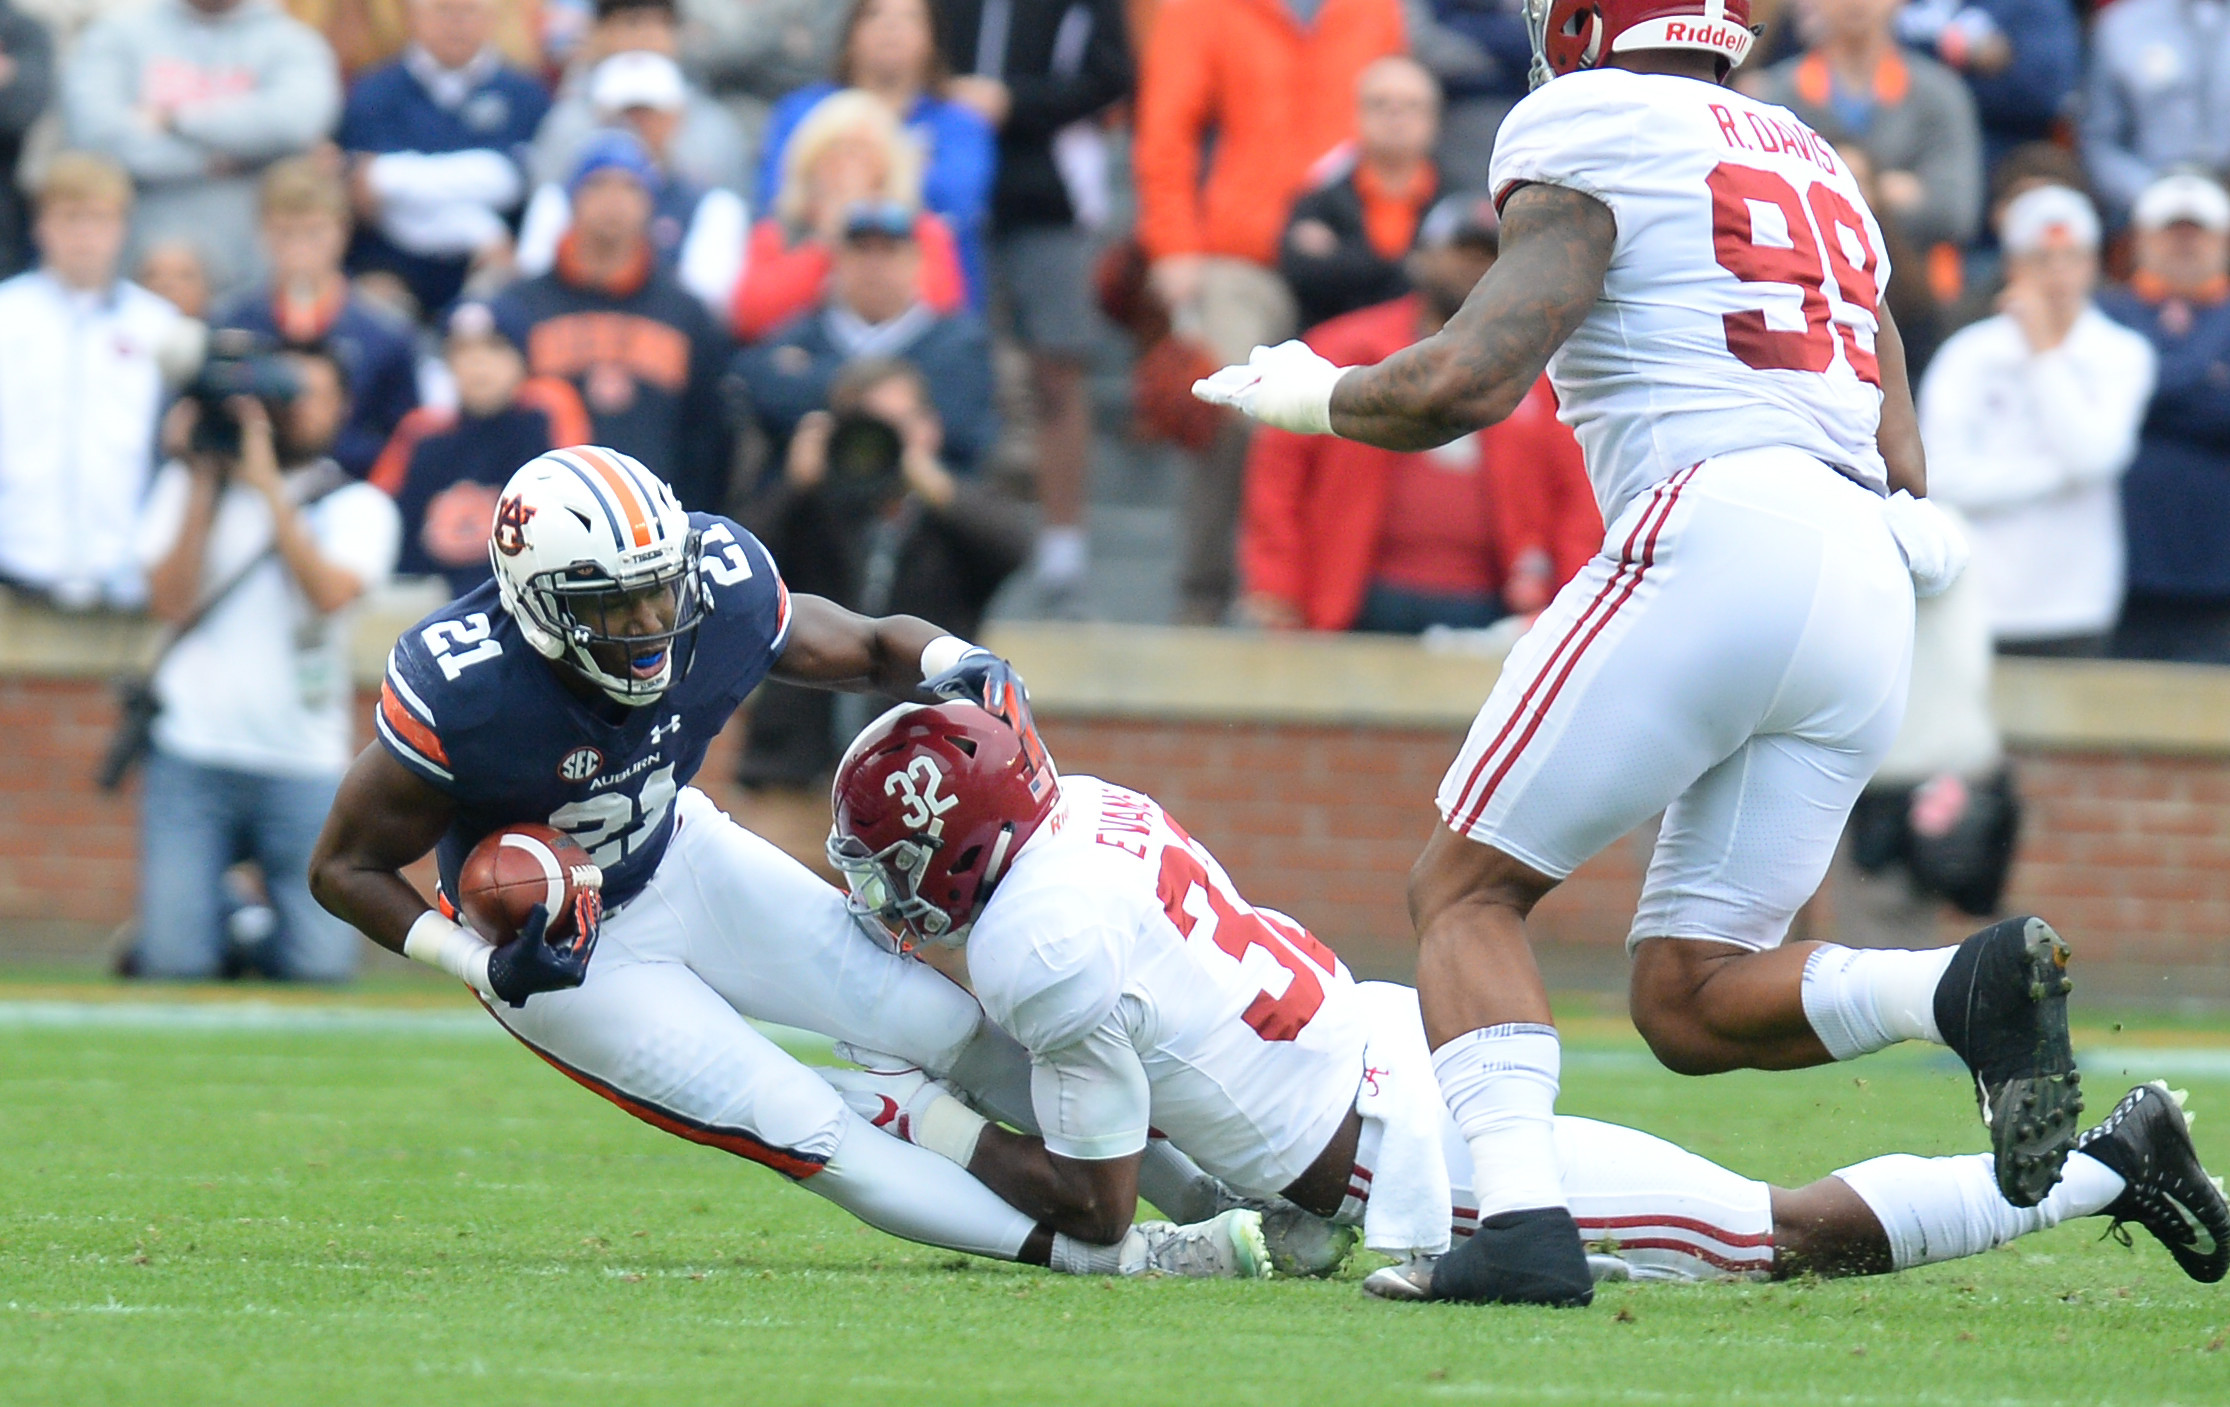 Auburn Tigers running back Kerryon Johnson (21) is tackled by Alabama Crimson Tide linebacker Rashaan Evans (32) during the first half of Saturday's game, at Jordan-Hare Stadium.